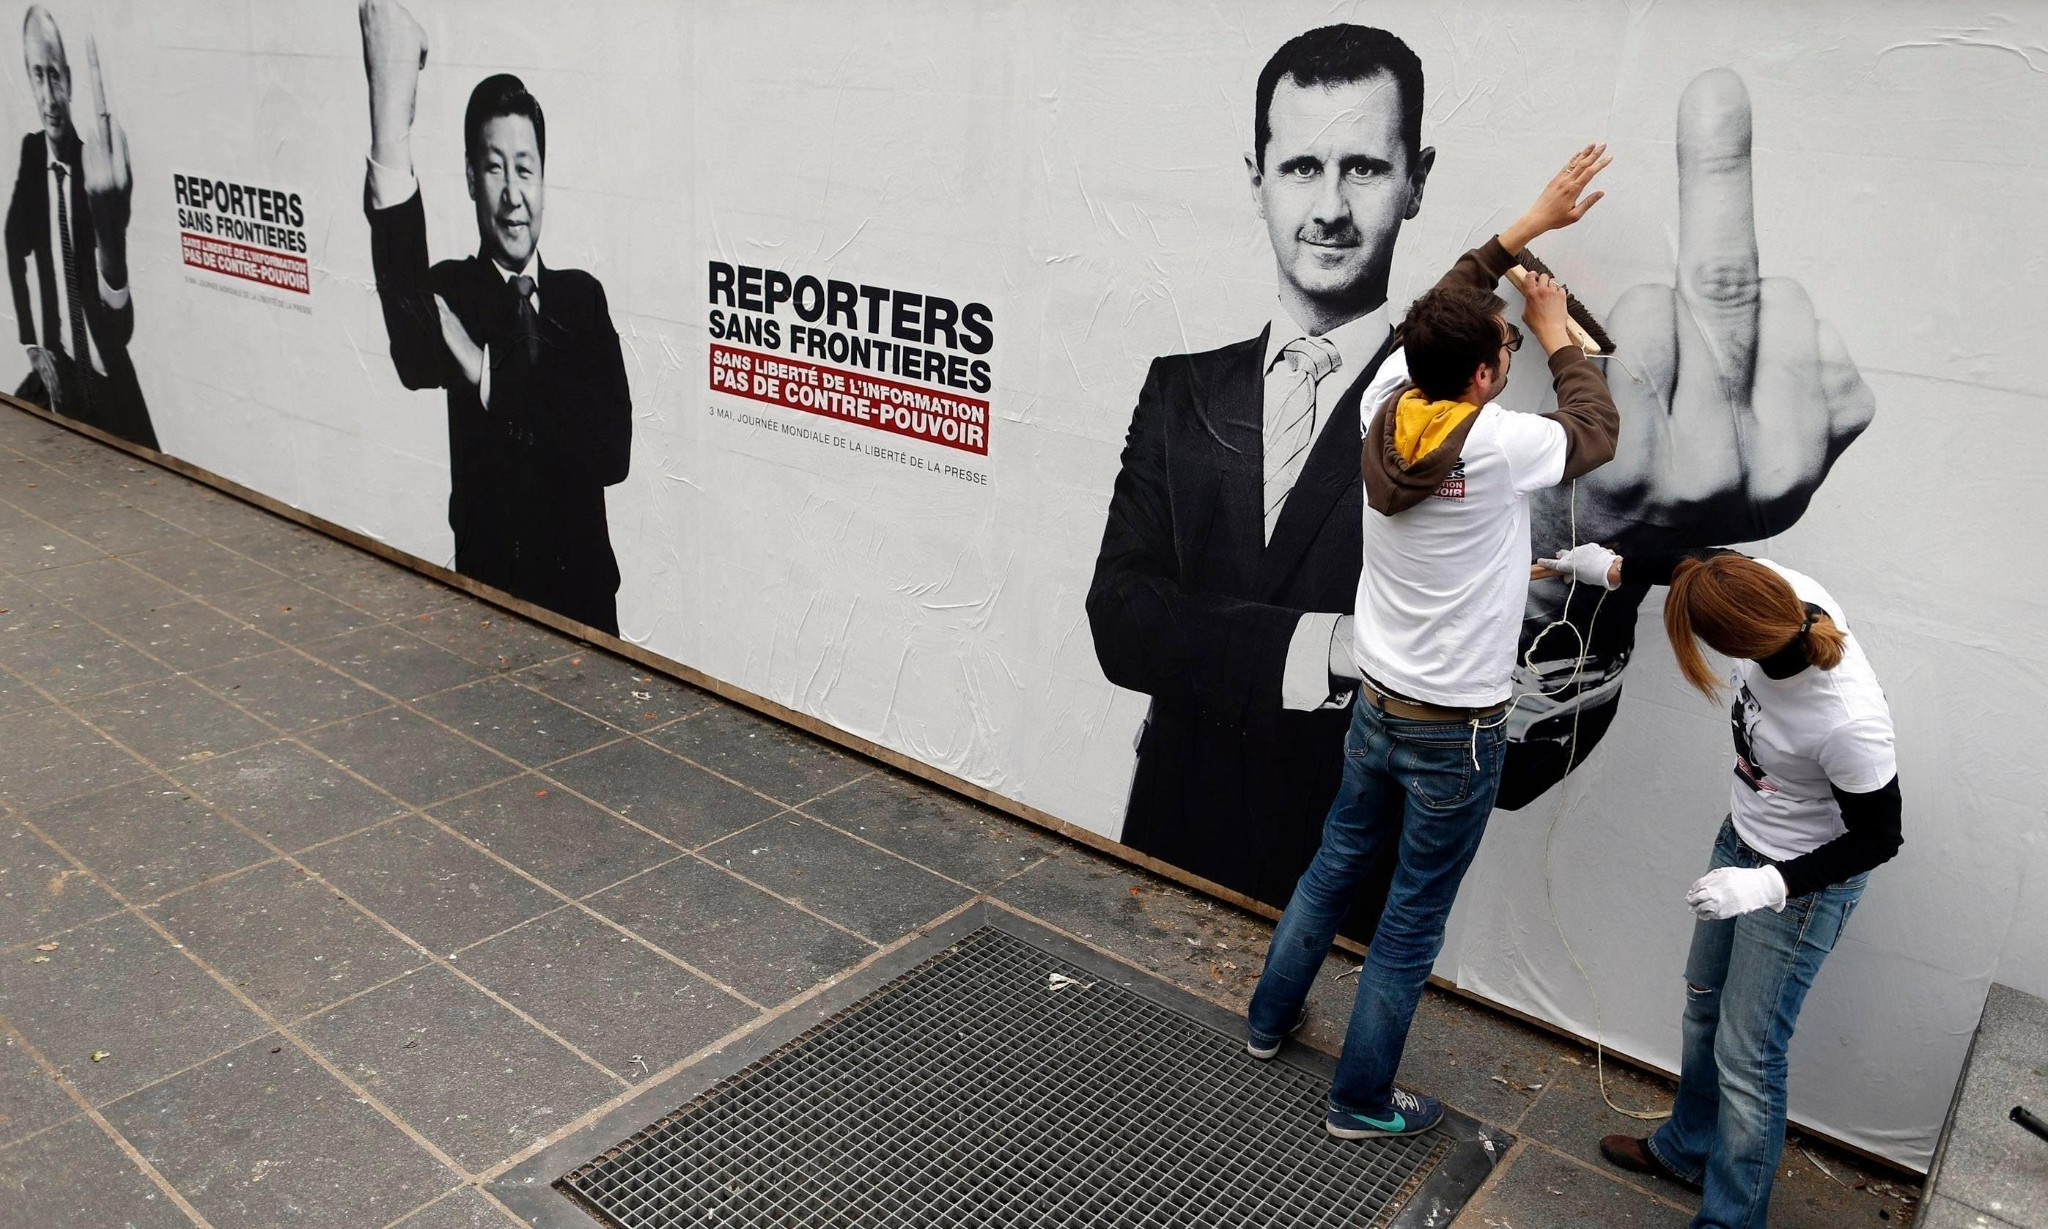 'Era of propaganda': press freedom in decline, says Reporters Without Borders